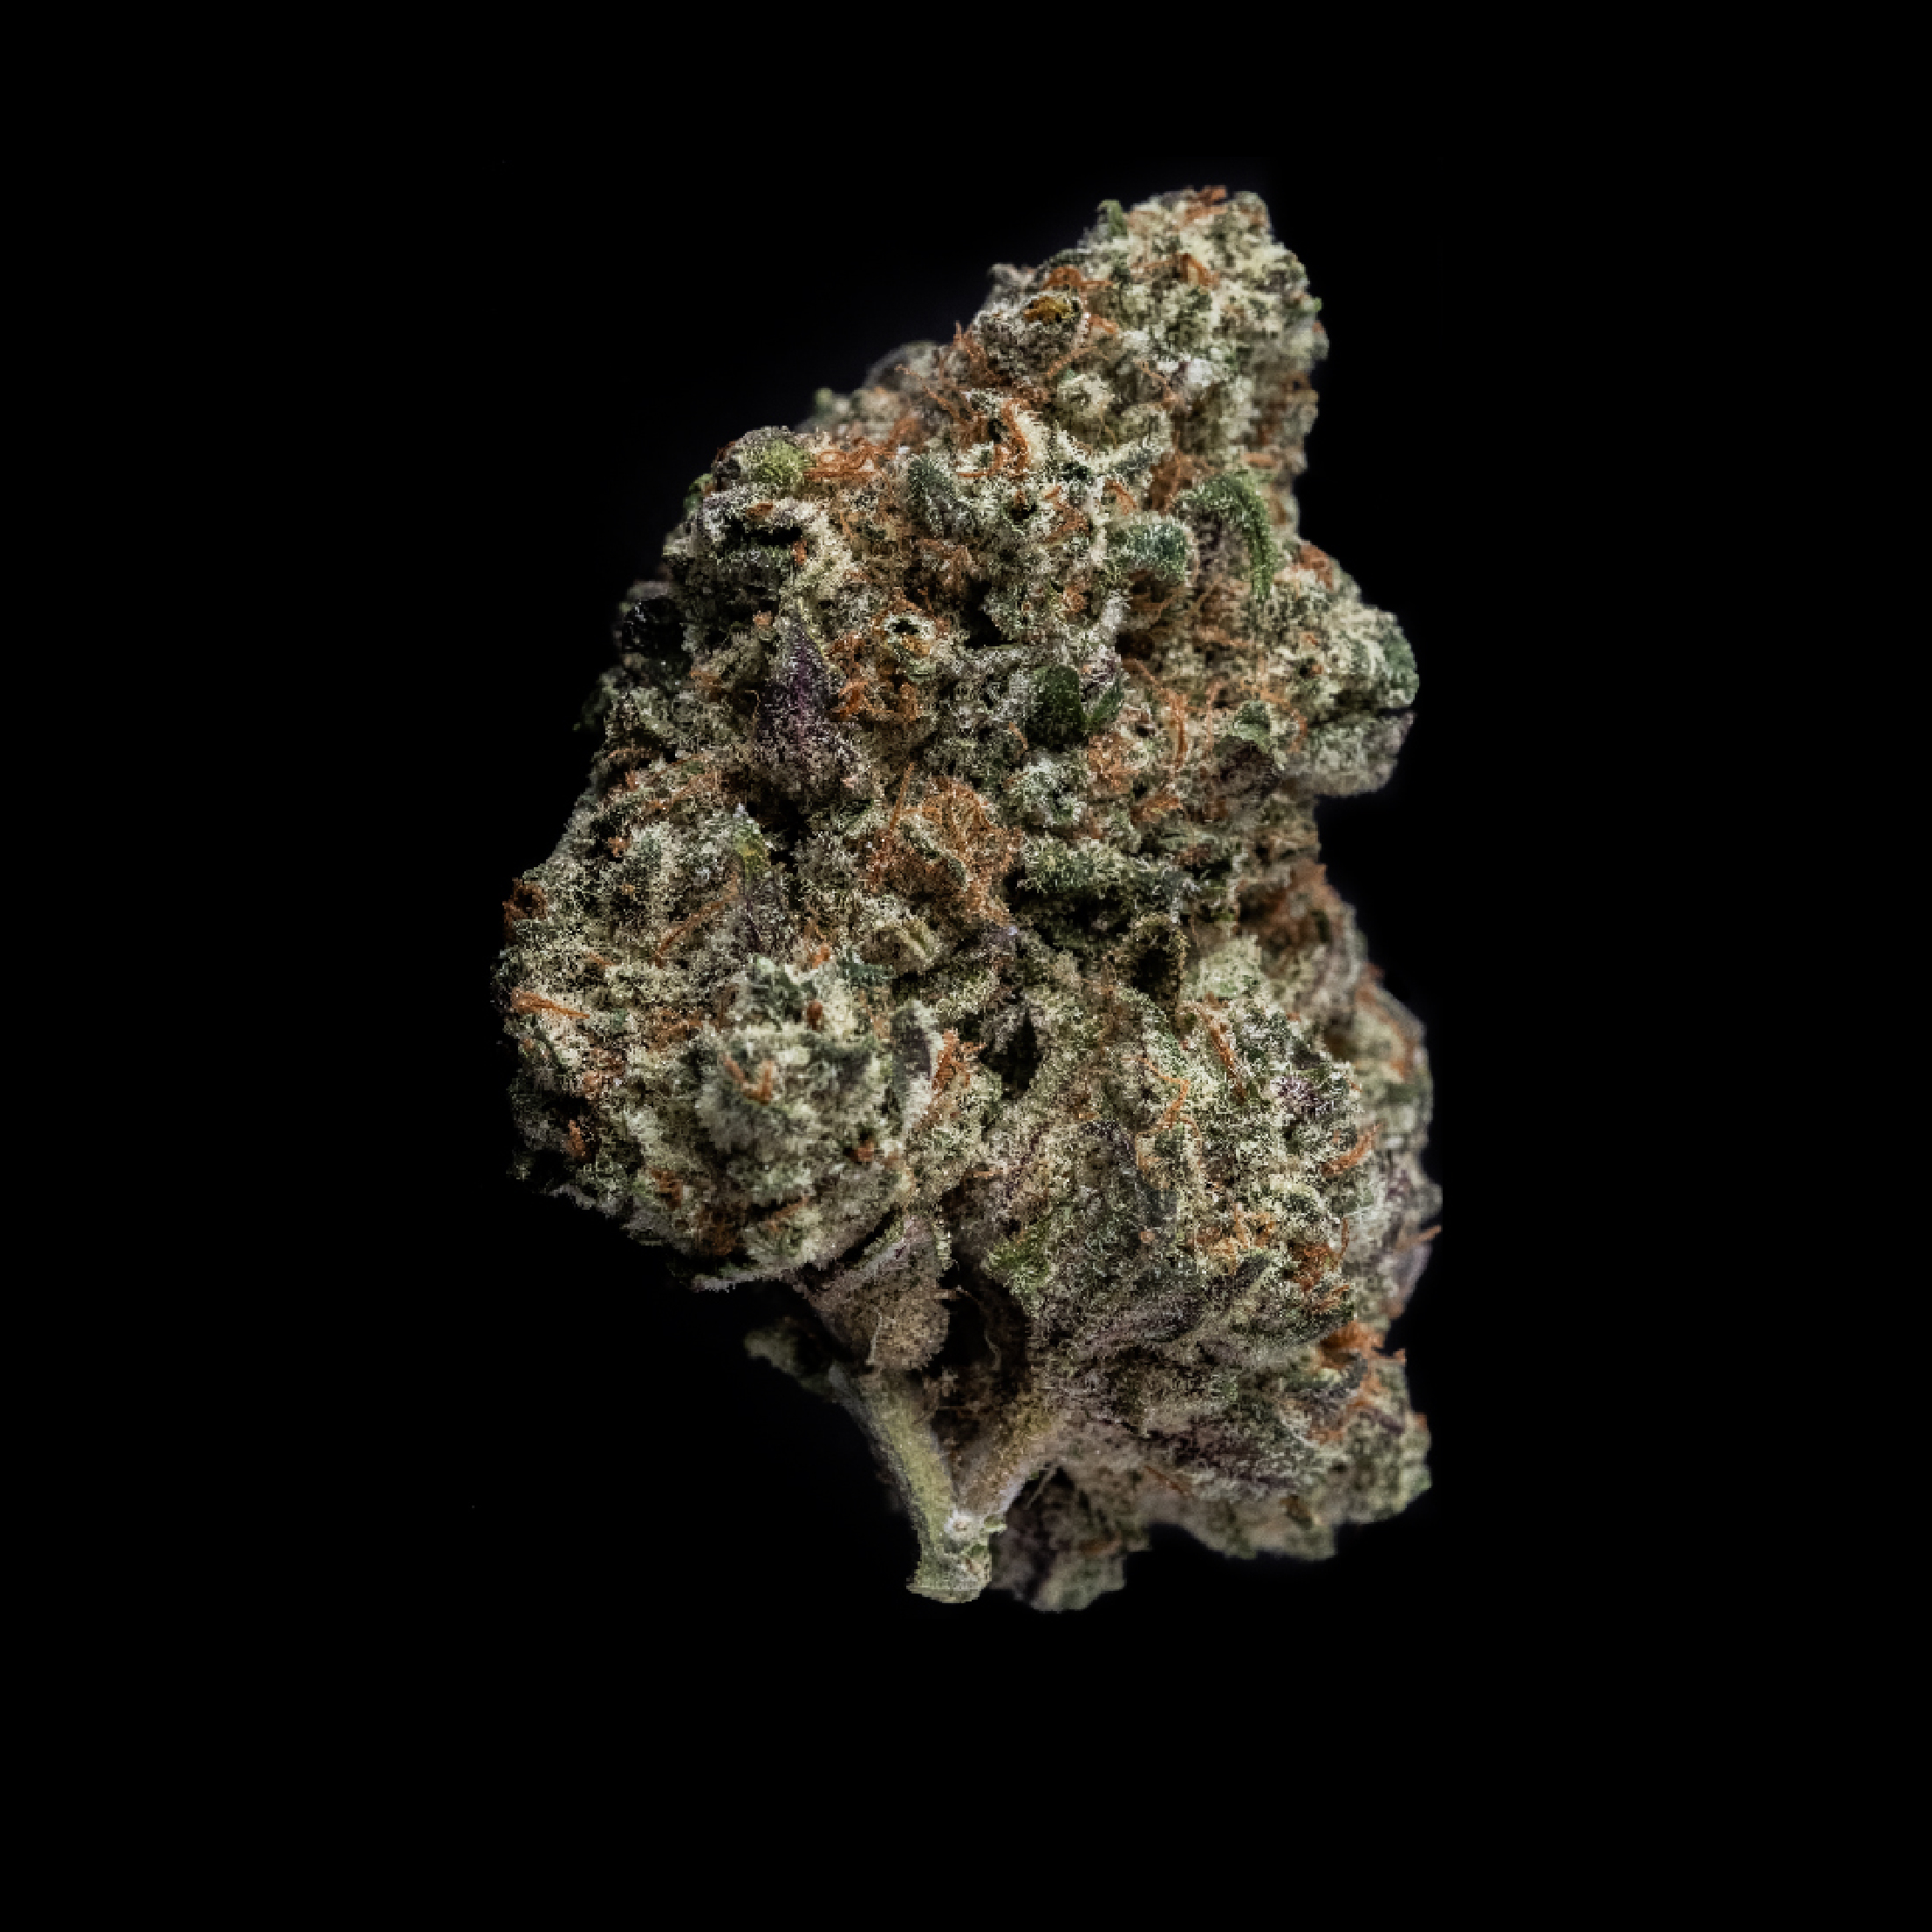 CHERRY CHEESECAKE - A mouth-watering indica with an equally potent smell. Gold Seal's cross of Kimbo Kush and Cherry Pie presents smokers with a satisfying, decadent flavor and a lasting, euphoric high.